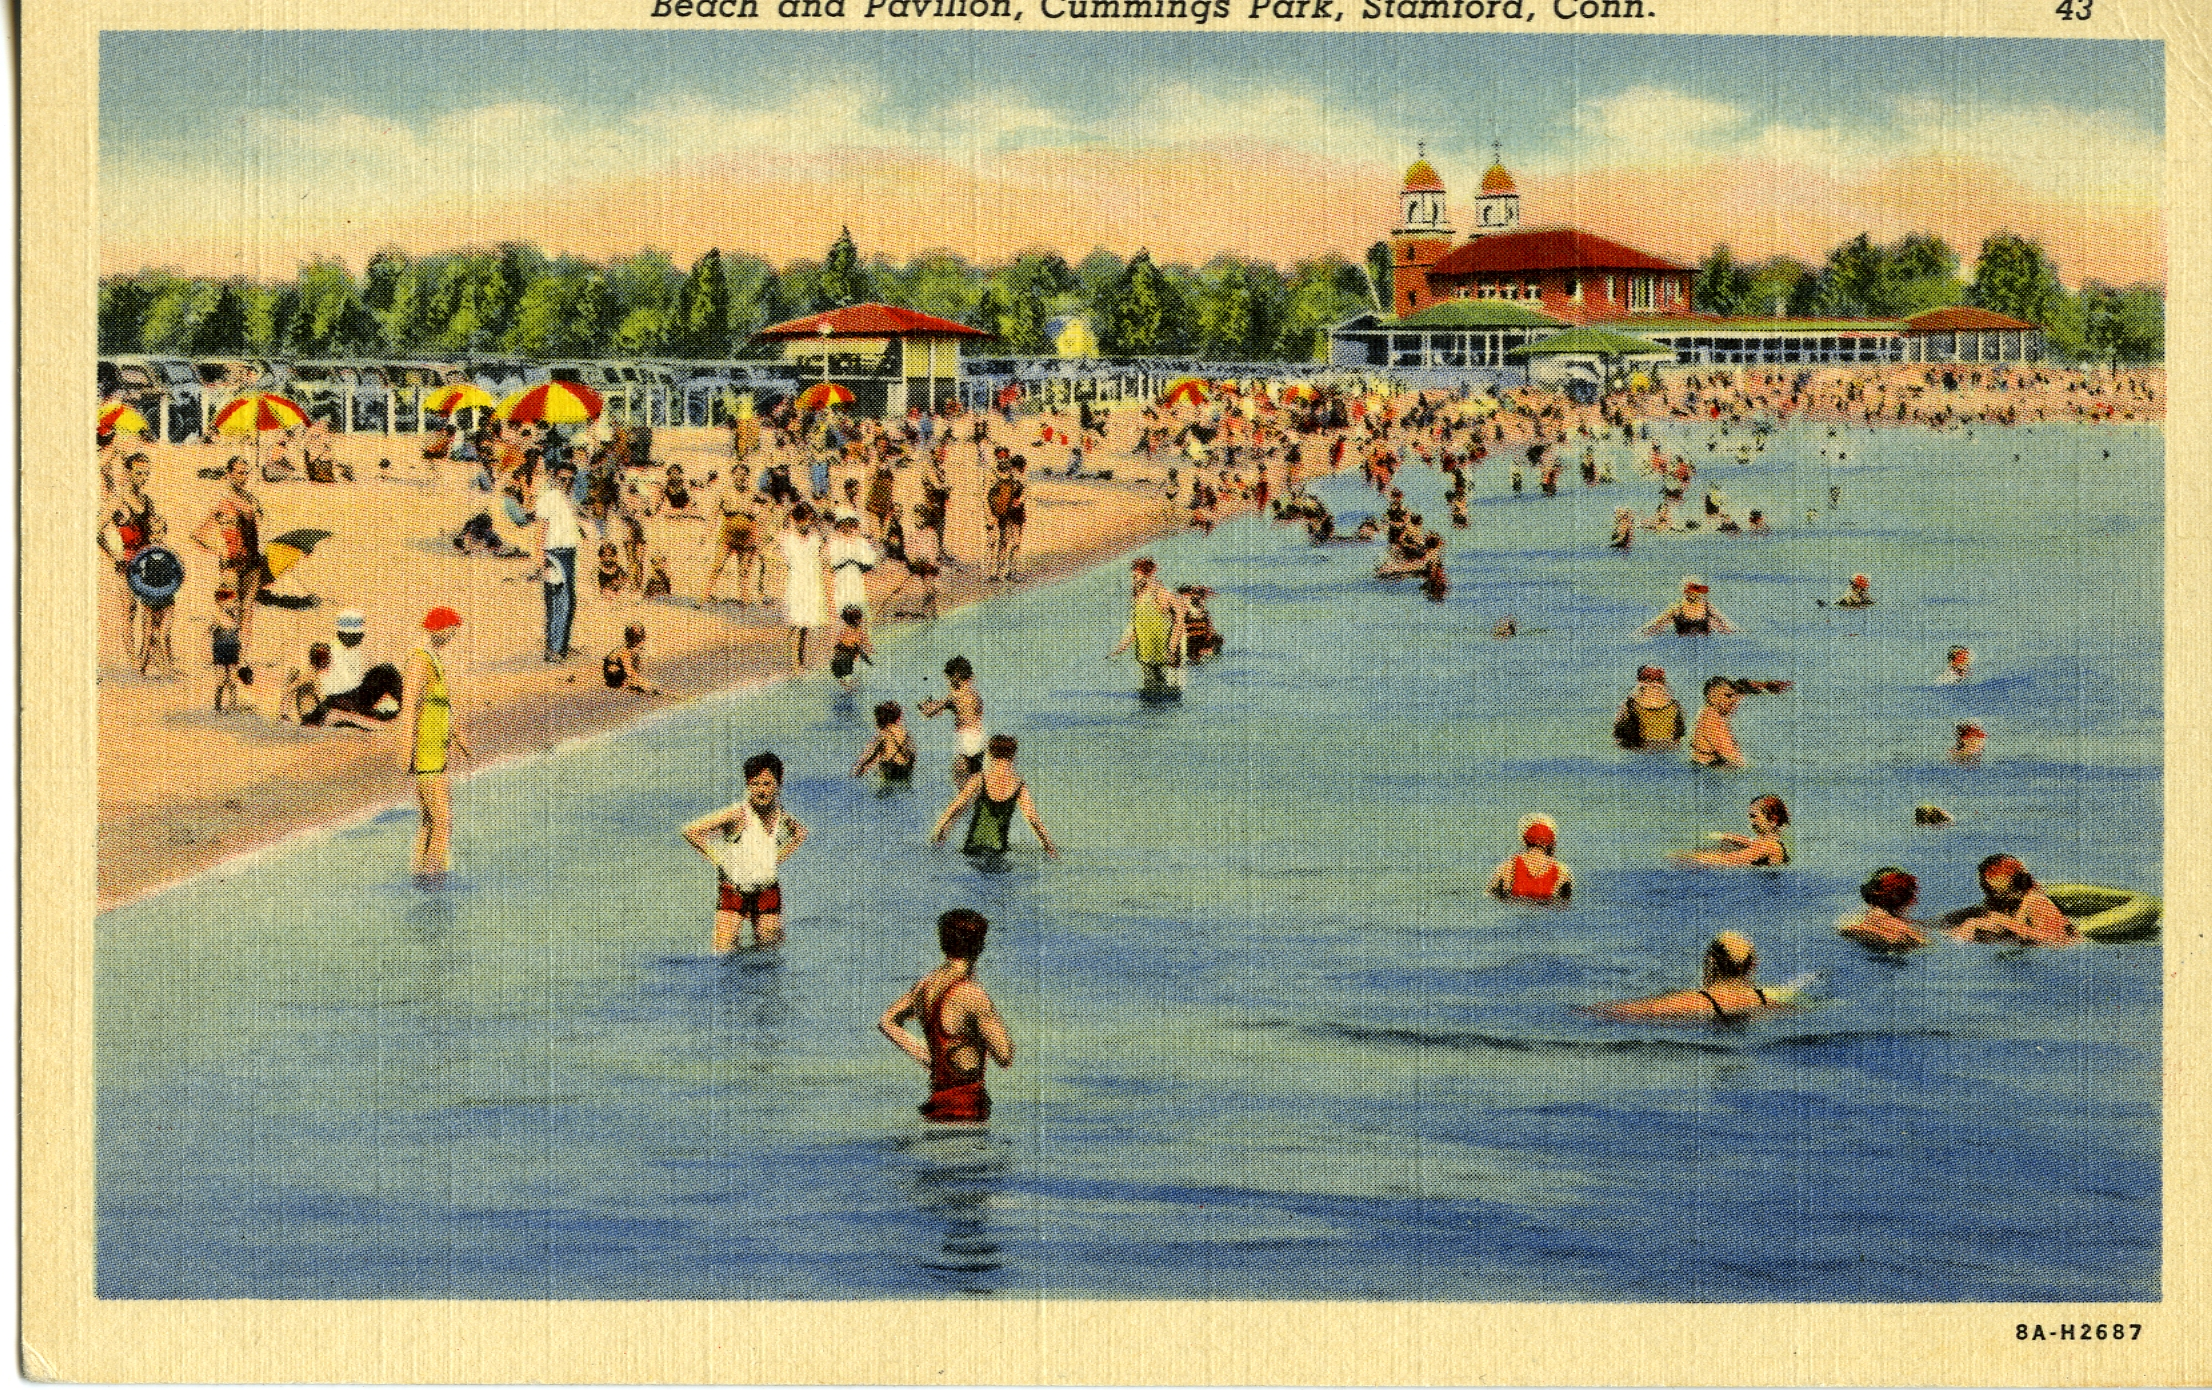 Postcard of beach and pavilion at Cummings Park